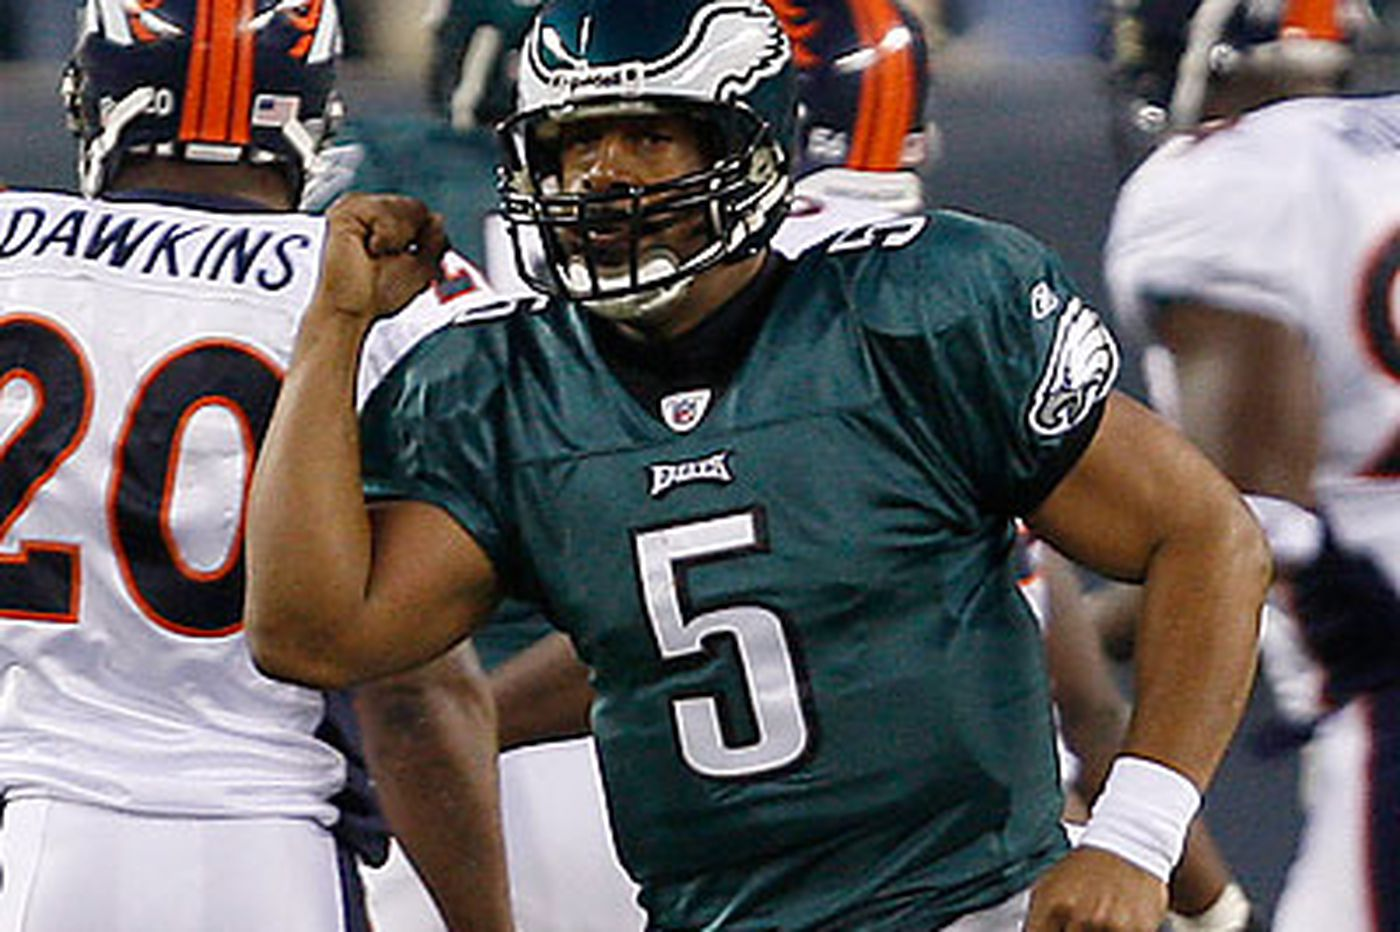 Phil Sheridan: Eagles' McNabb facing key stretch in career